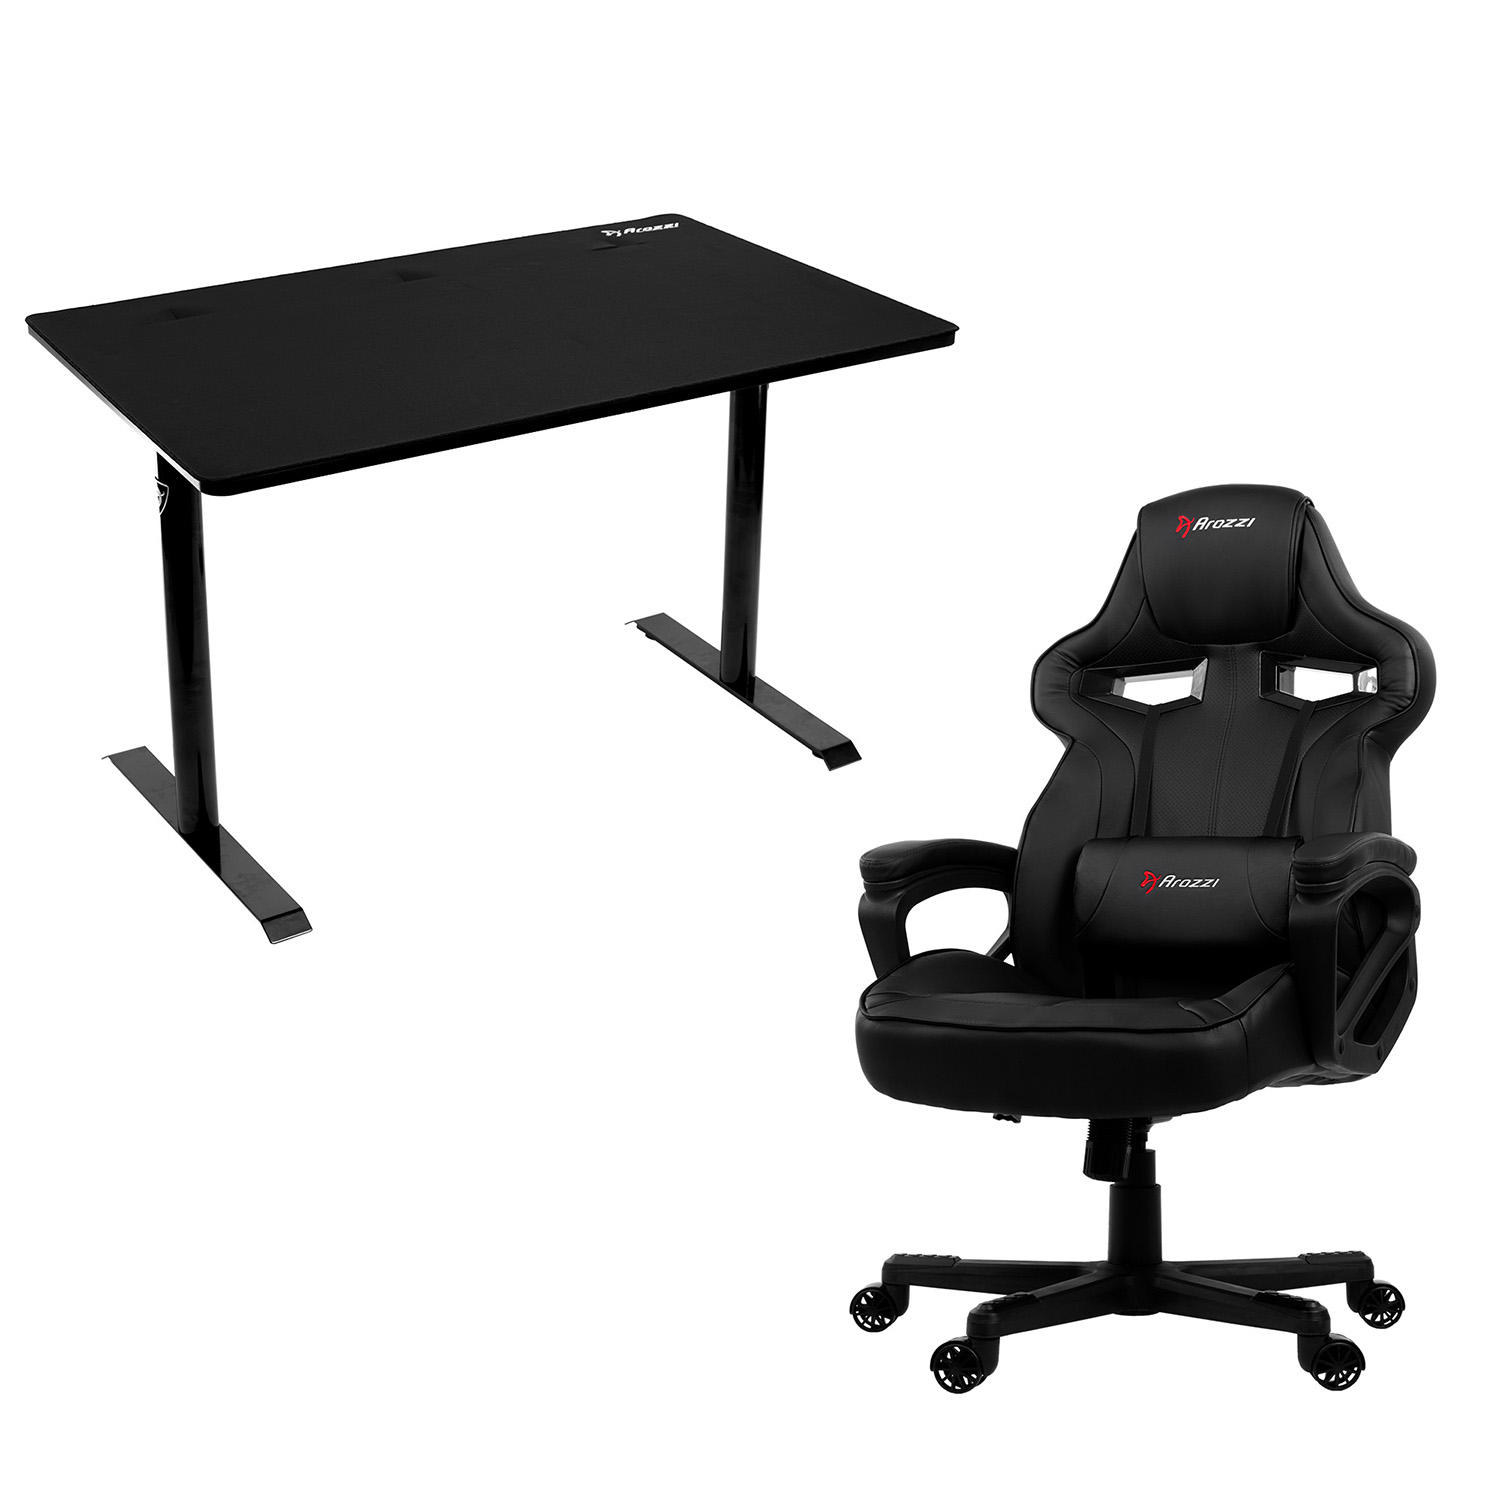 a black desk and supportive black chair on wheels